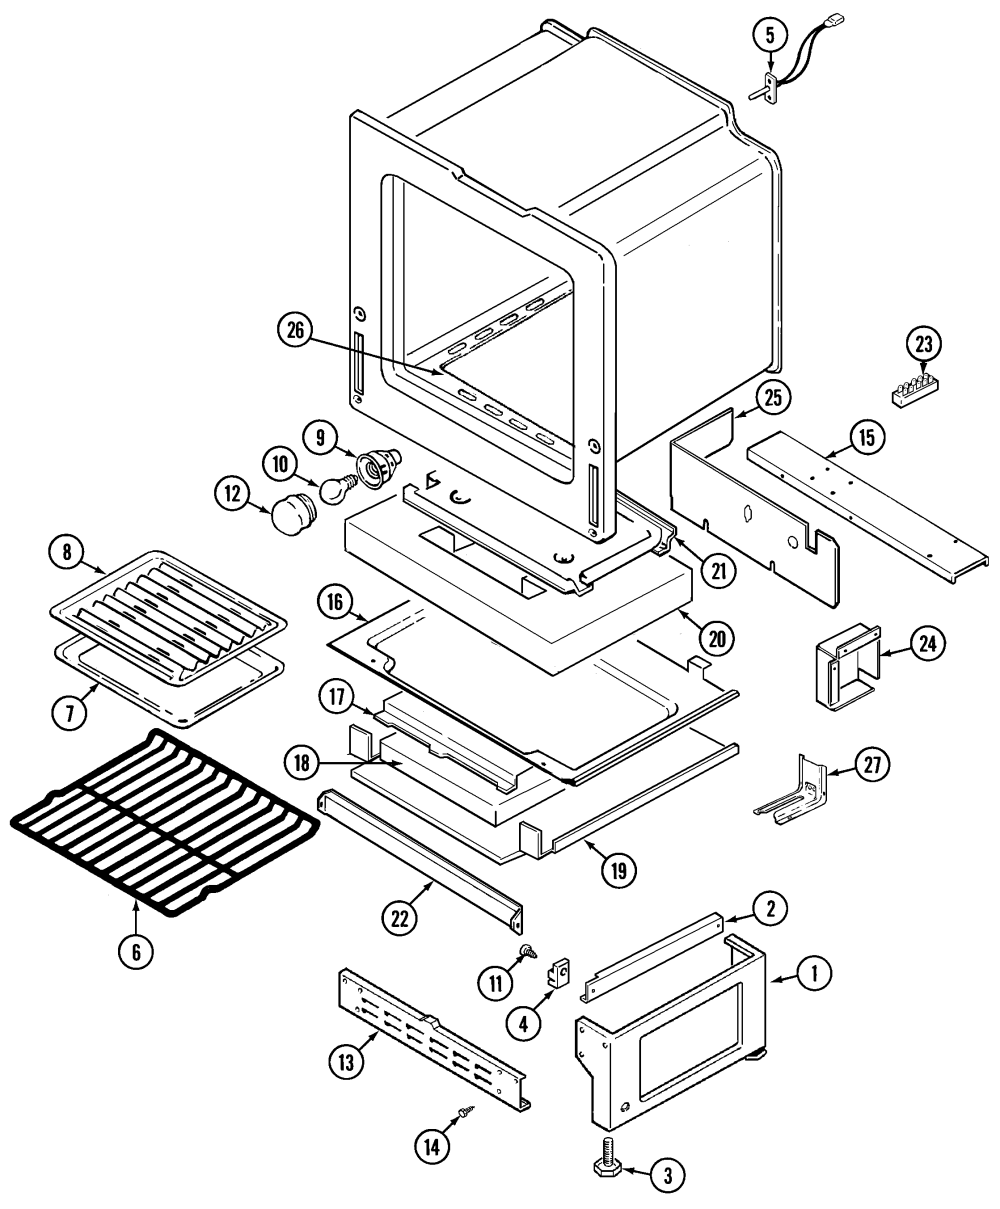 medium resolution of crg9700cae range oven base parts diagram